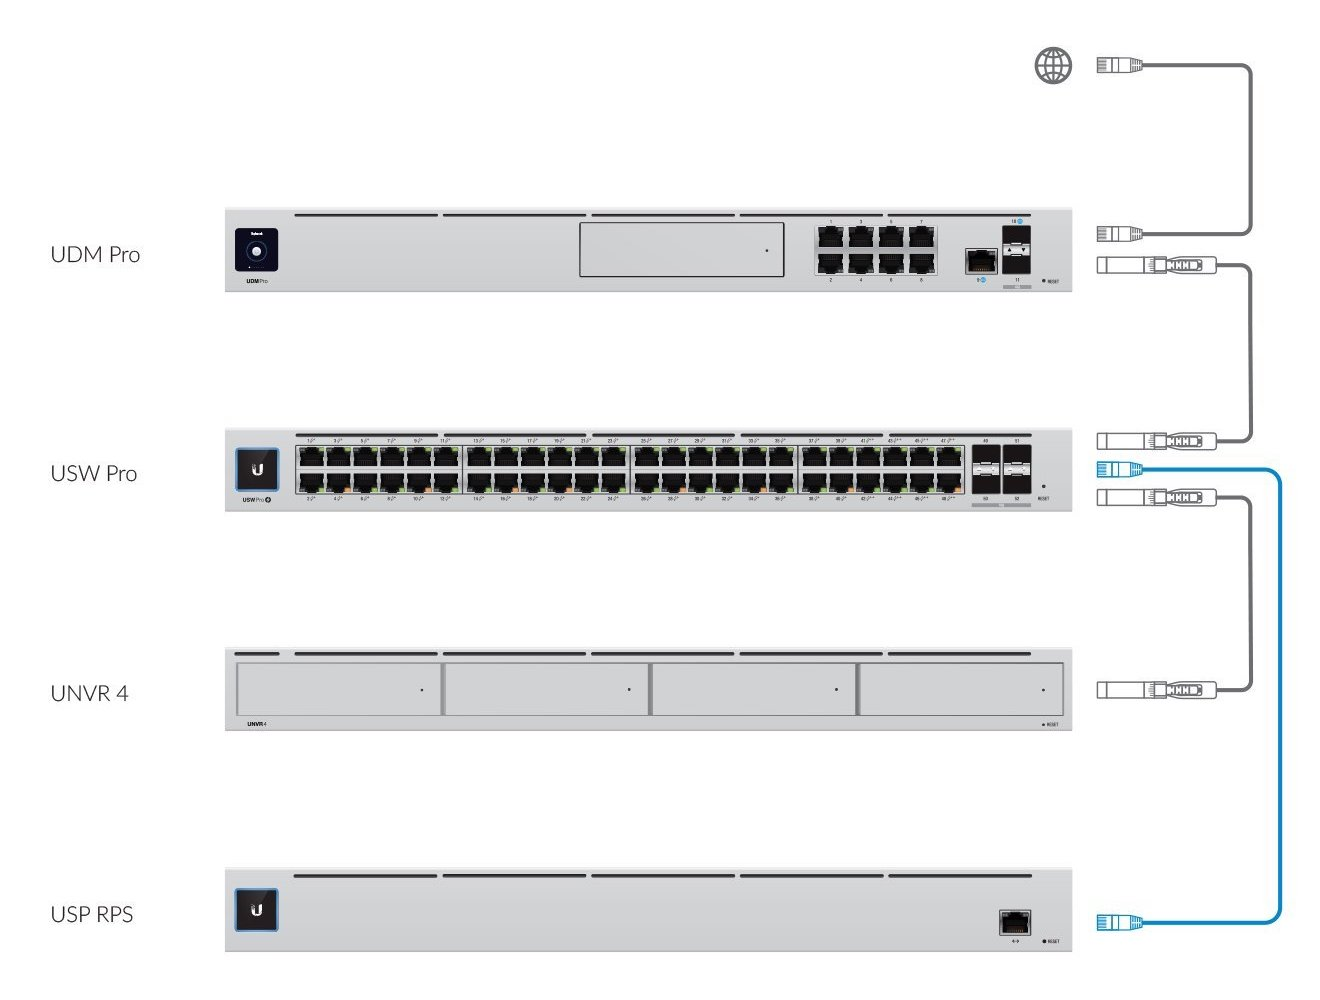 Ubiquiti UNVR 4 Revealed as a 1U 4-Bay NVR in Product Photos